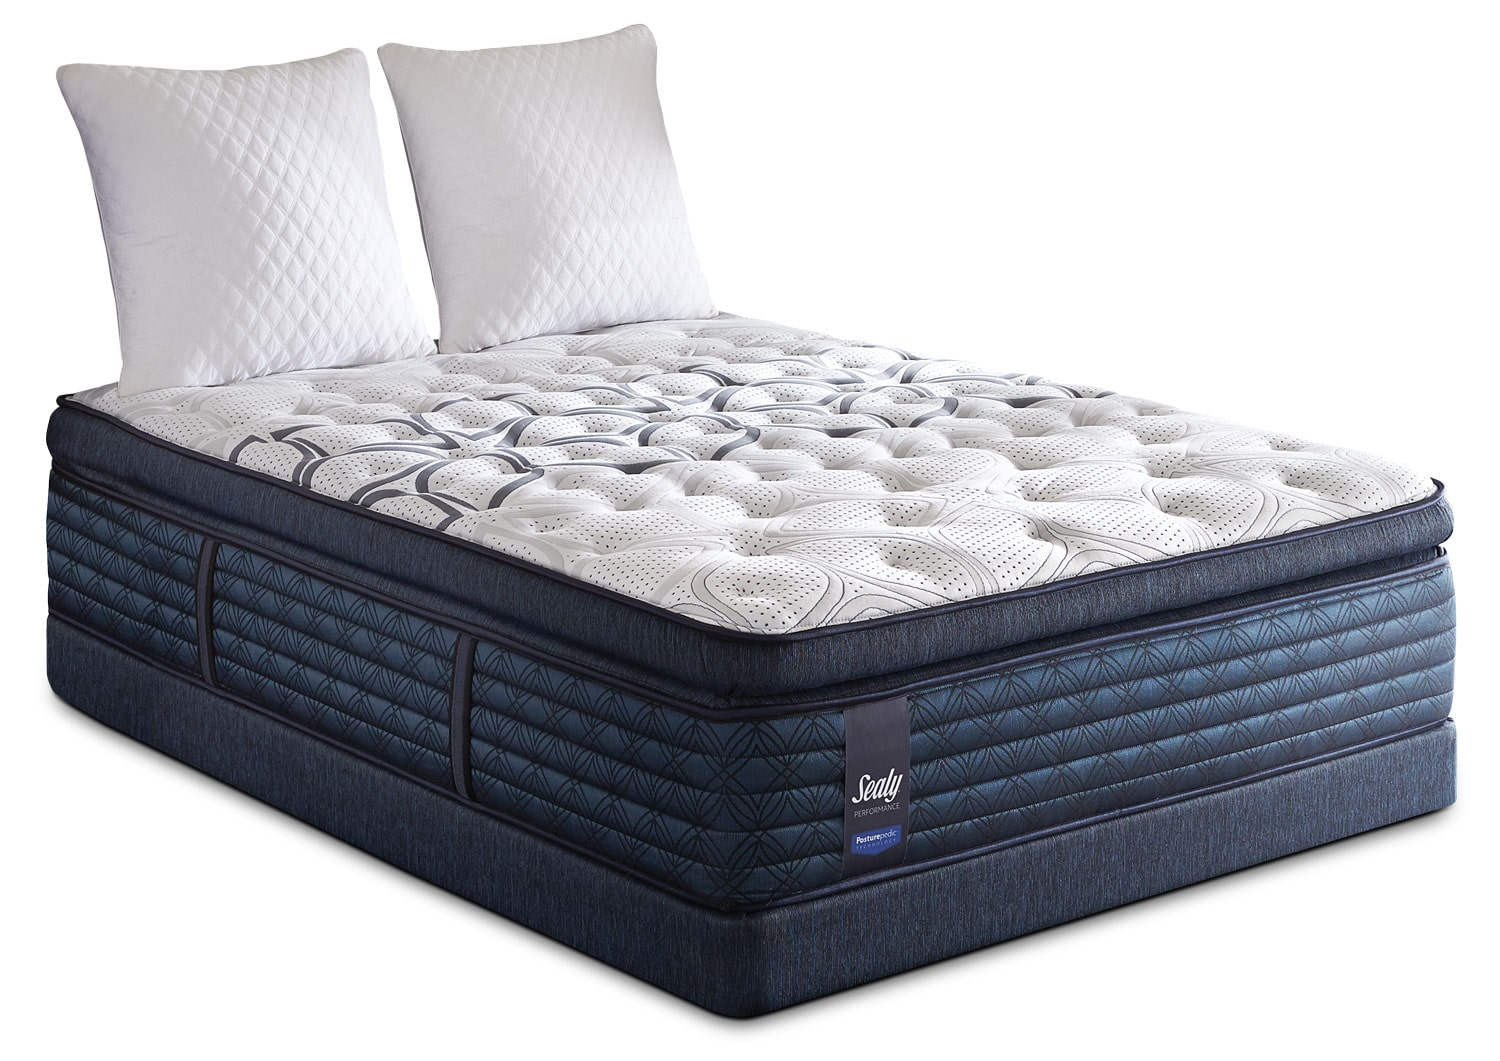 Mattresses and Bedding - Sealy ProBack Cantania Euro Pillow-Top Plush Twin Mattress Set